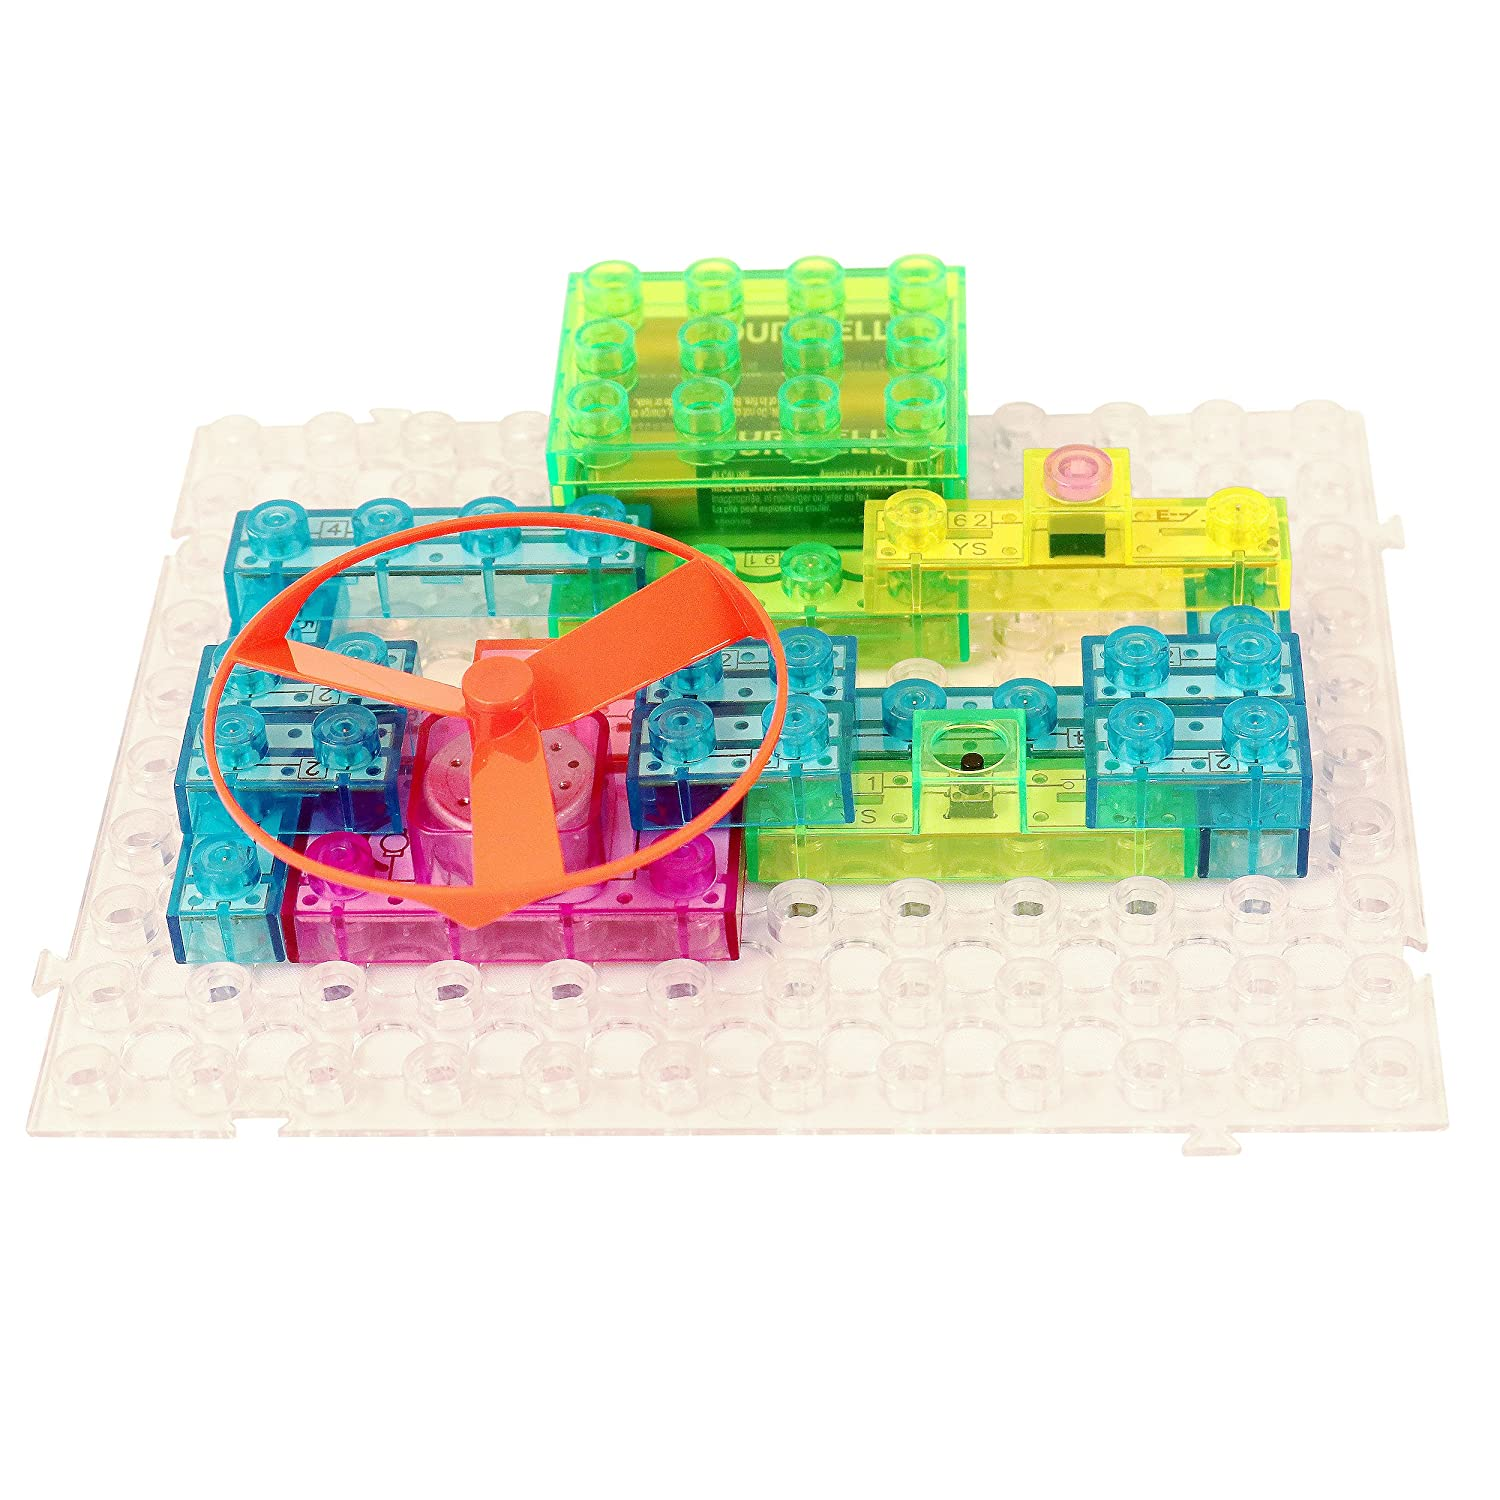 Circuit Kit With Lighted Bricks 115 Different Projects Simple Solar Circuits Evil Mad Scientist Laboratories In 1 Best Stem Educational Gift For Boys And Girls Ages 6 14 Science Experiment W